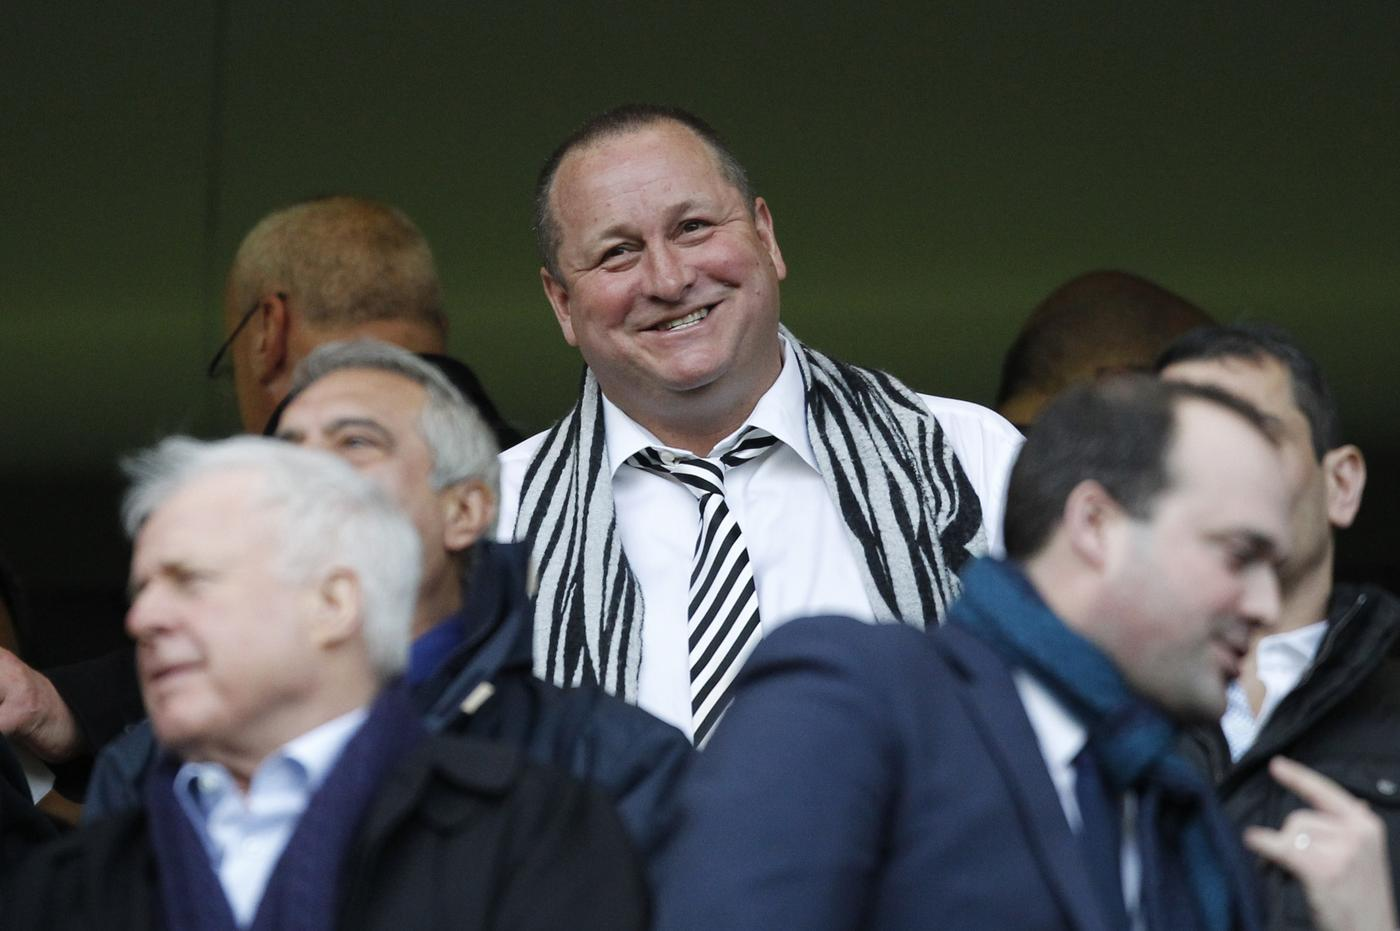 Mike Ashley is not really doing that much wrong in his running of Newcastle United